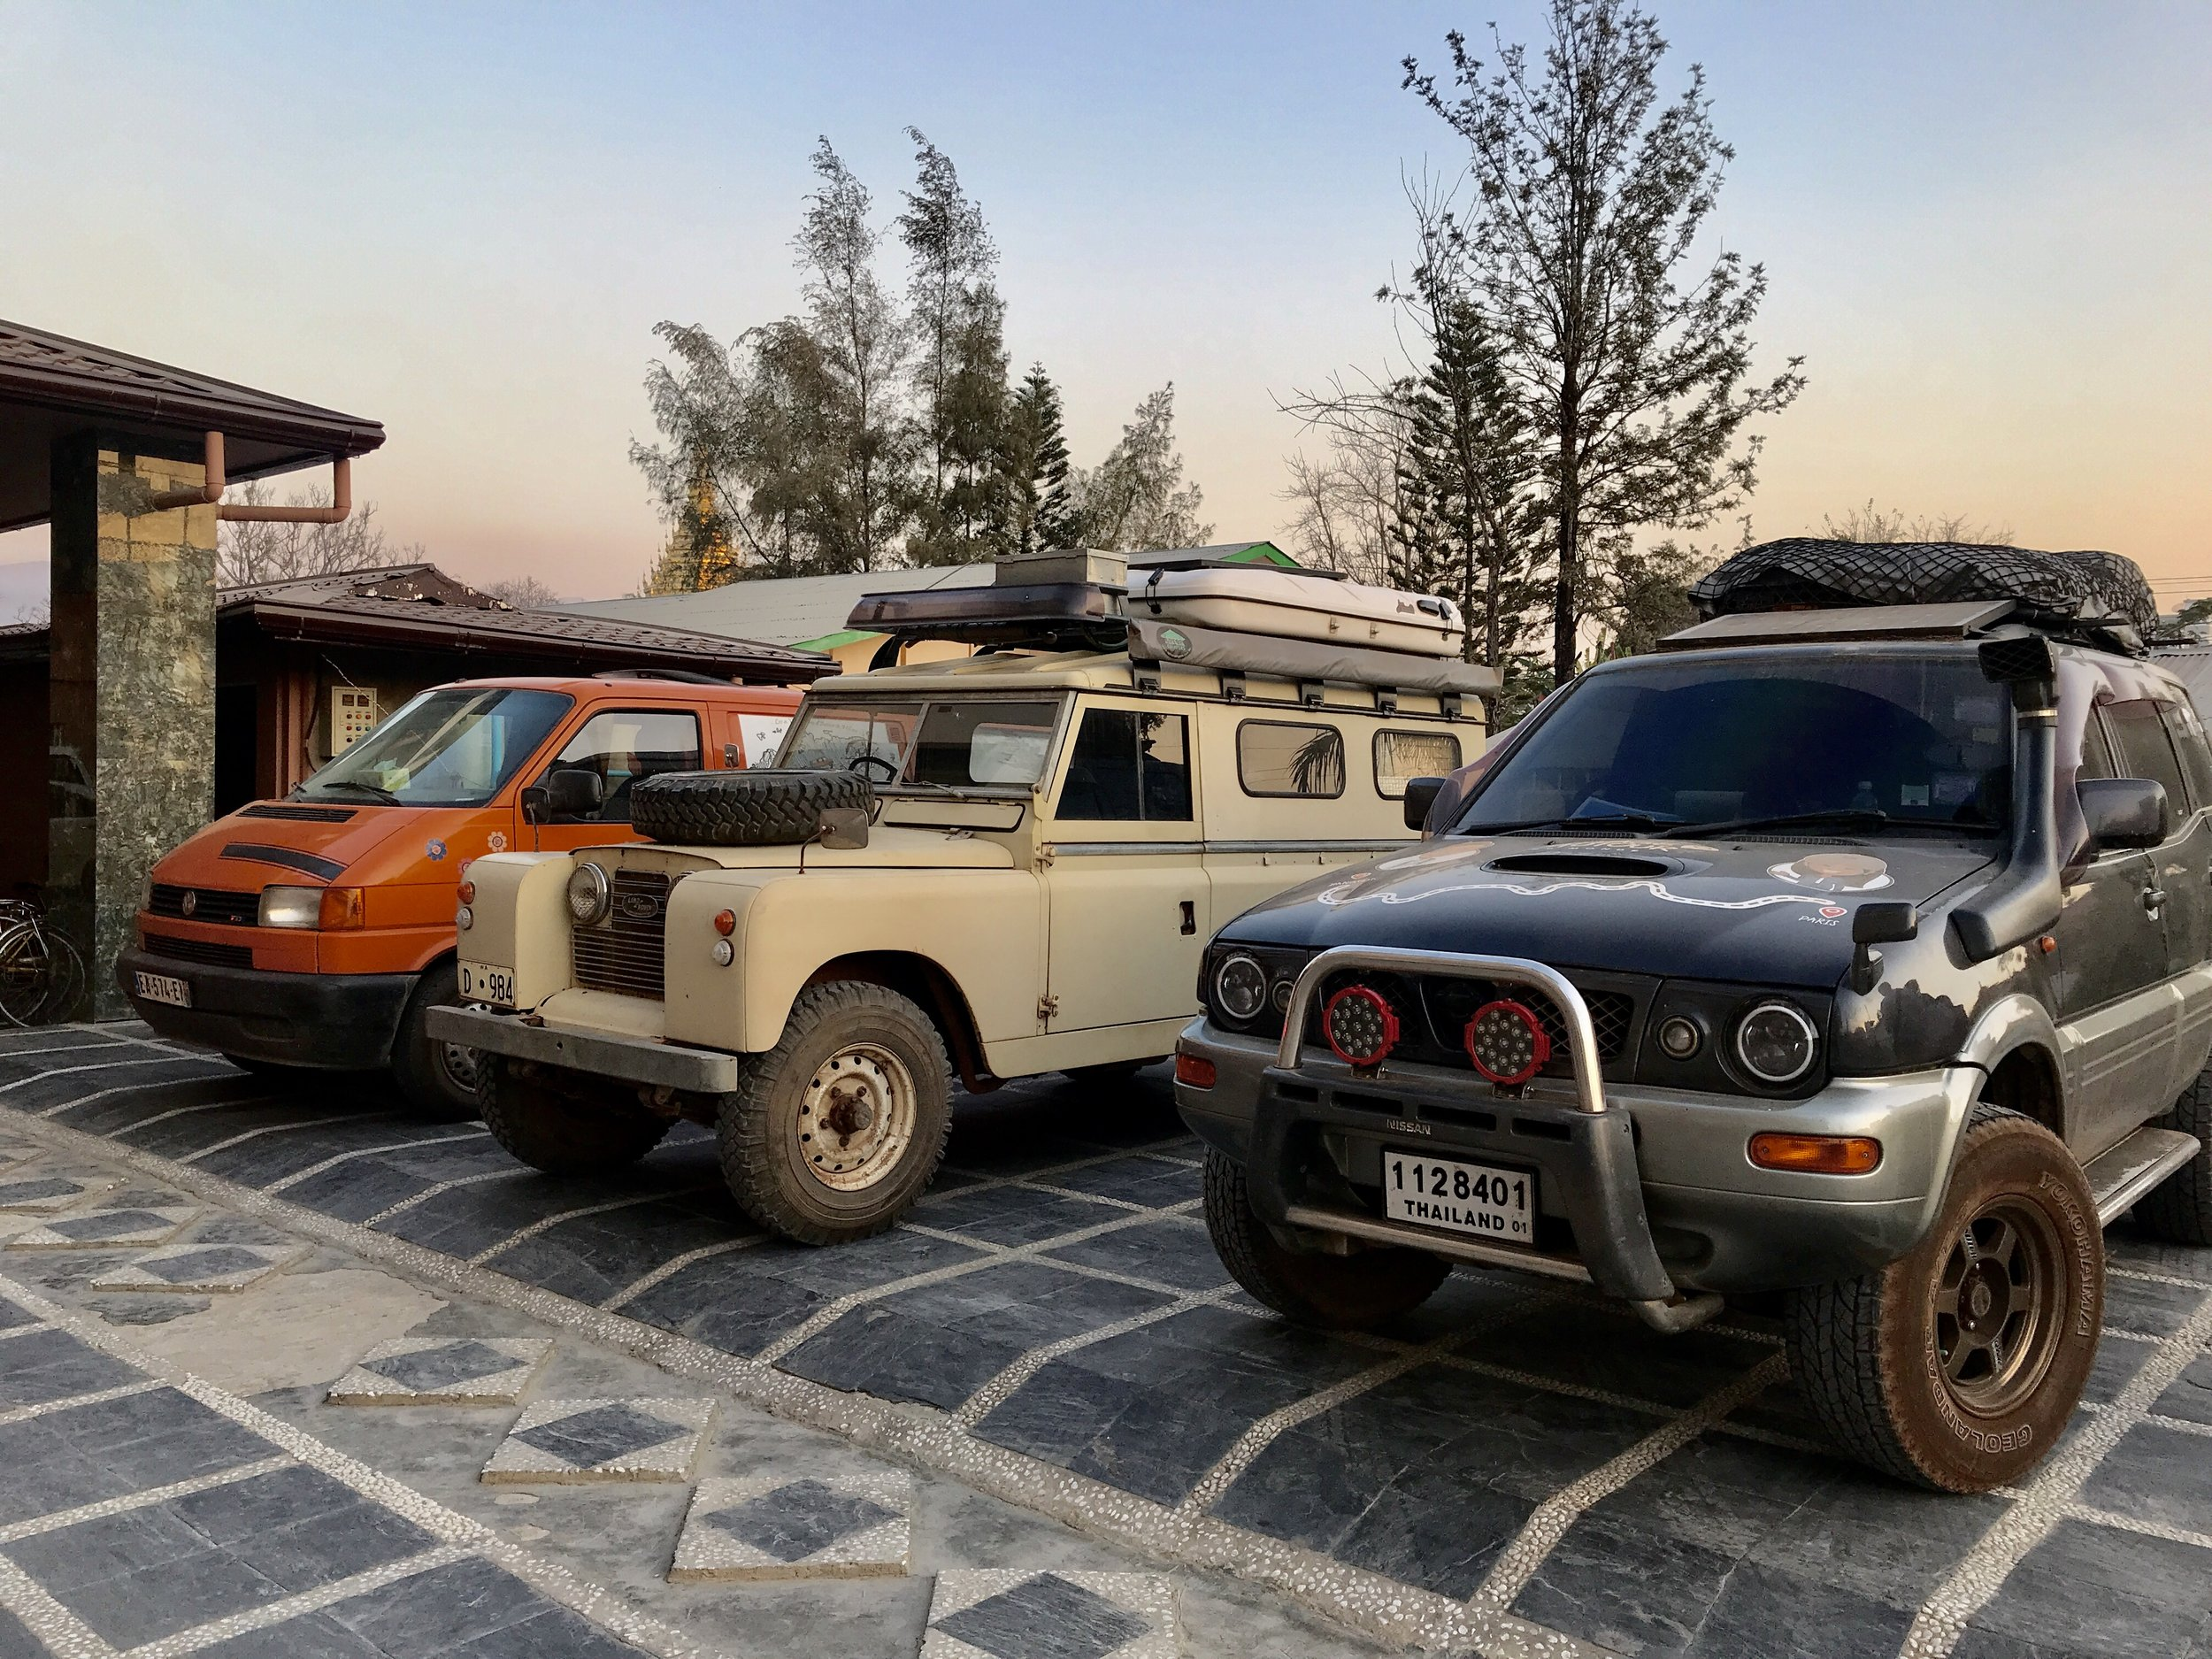 My baby 4x4 and his friends